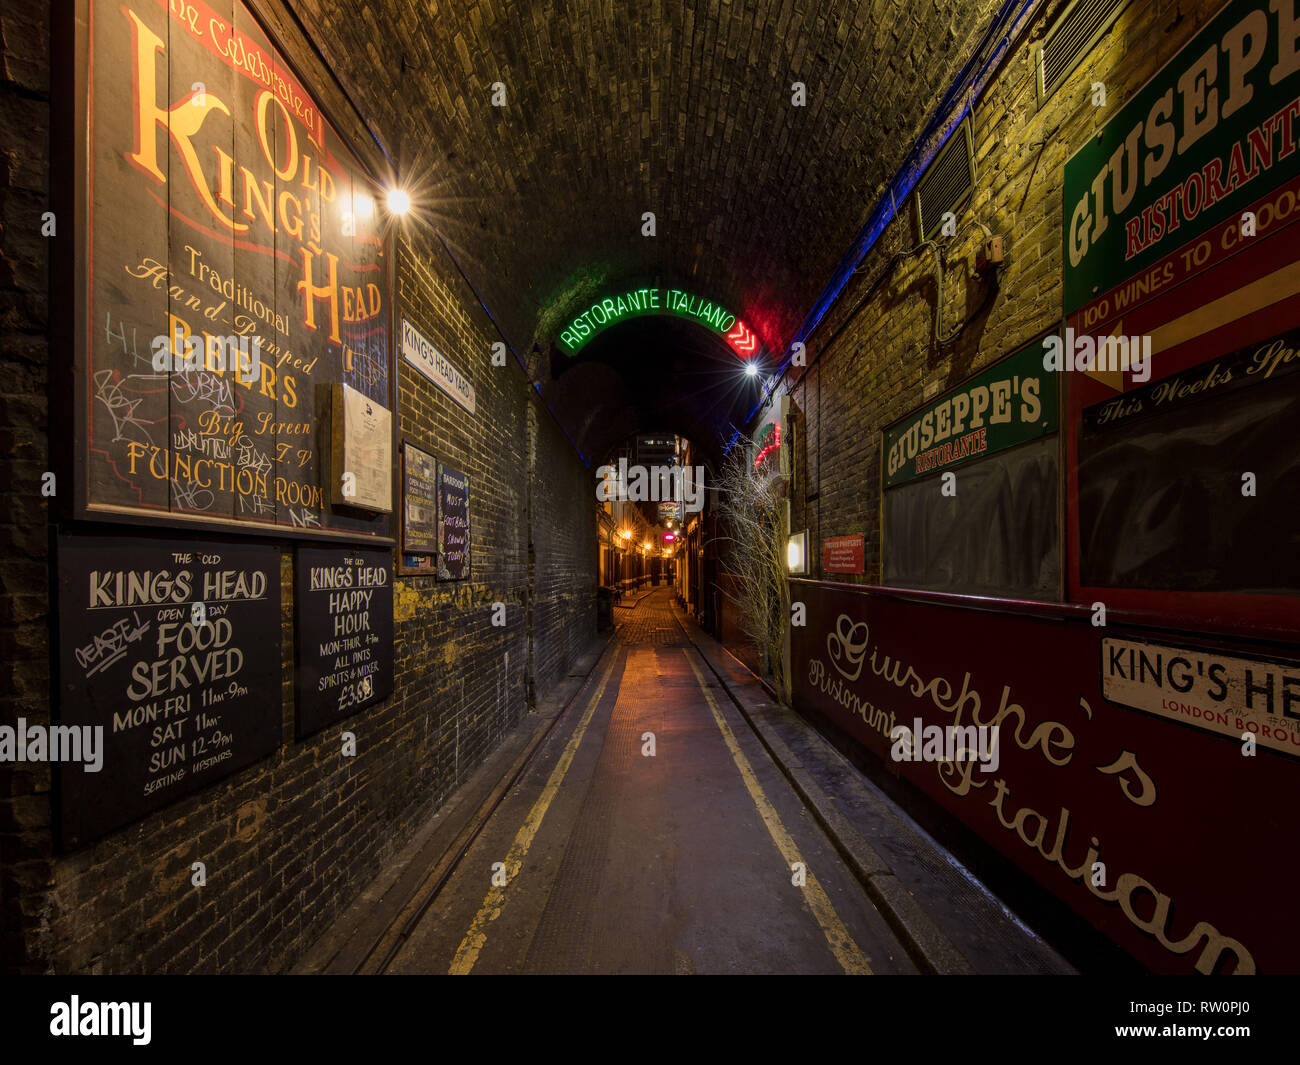 A shot of an King's Head Yard with numerous signs in London. giuseppe's Ristorante,and Old King's Head. - Stock Image